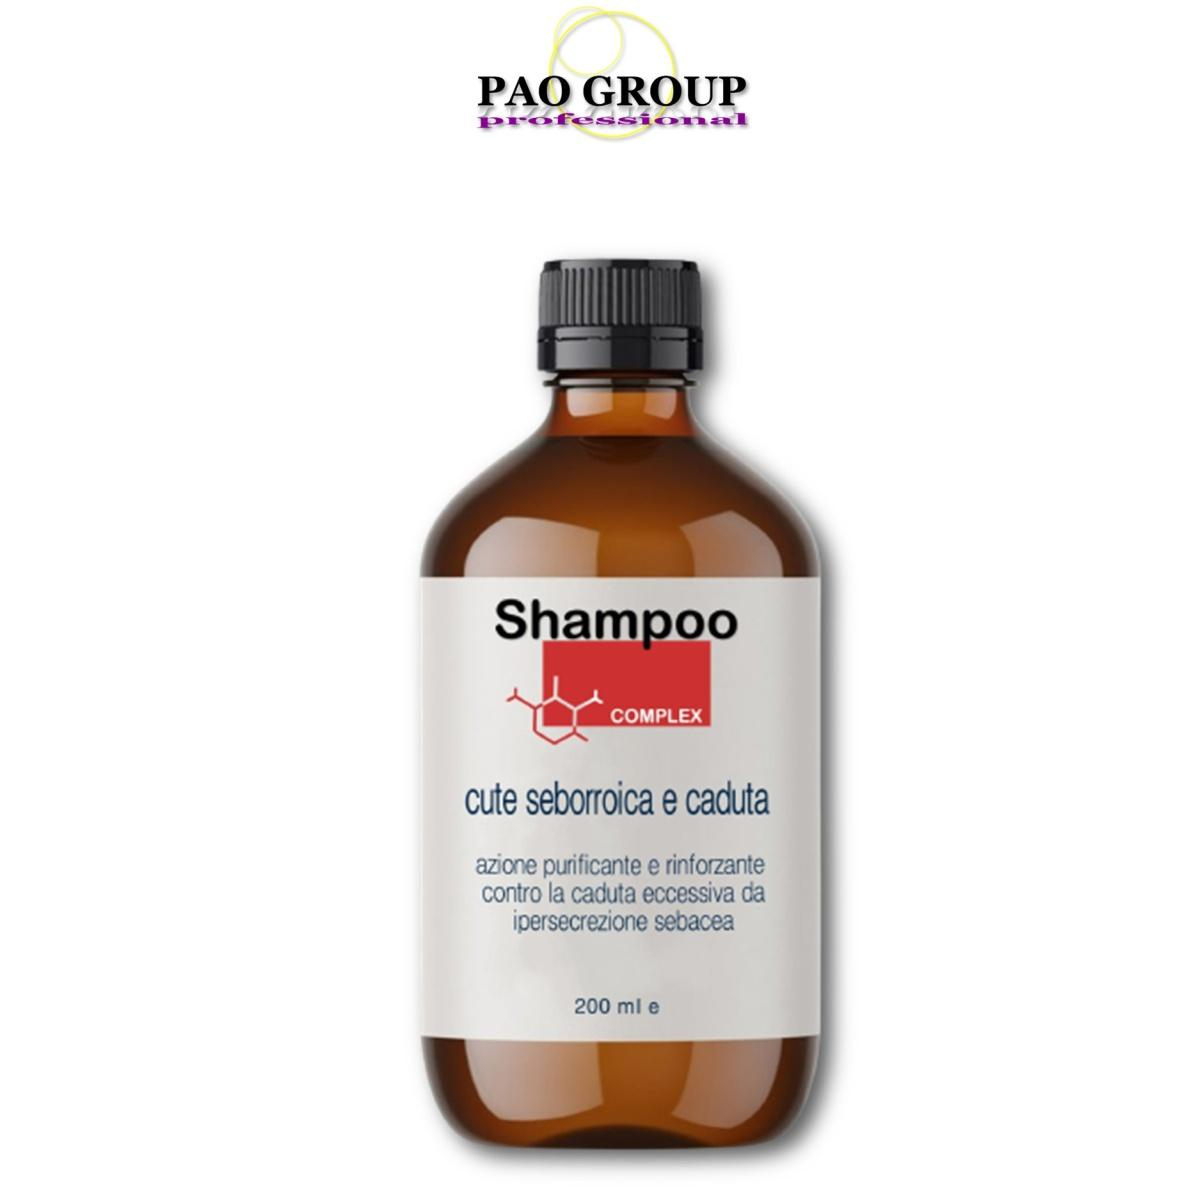 Pao Group Shampoo Complex Cute Seborroica e Caduta 200 ml